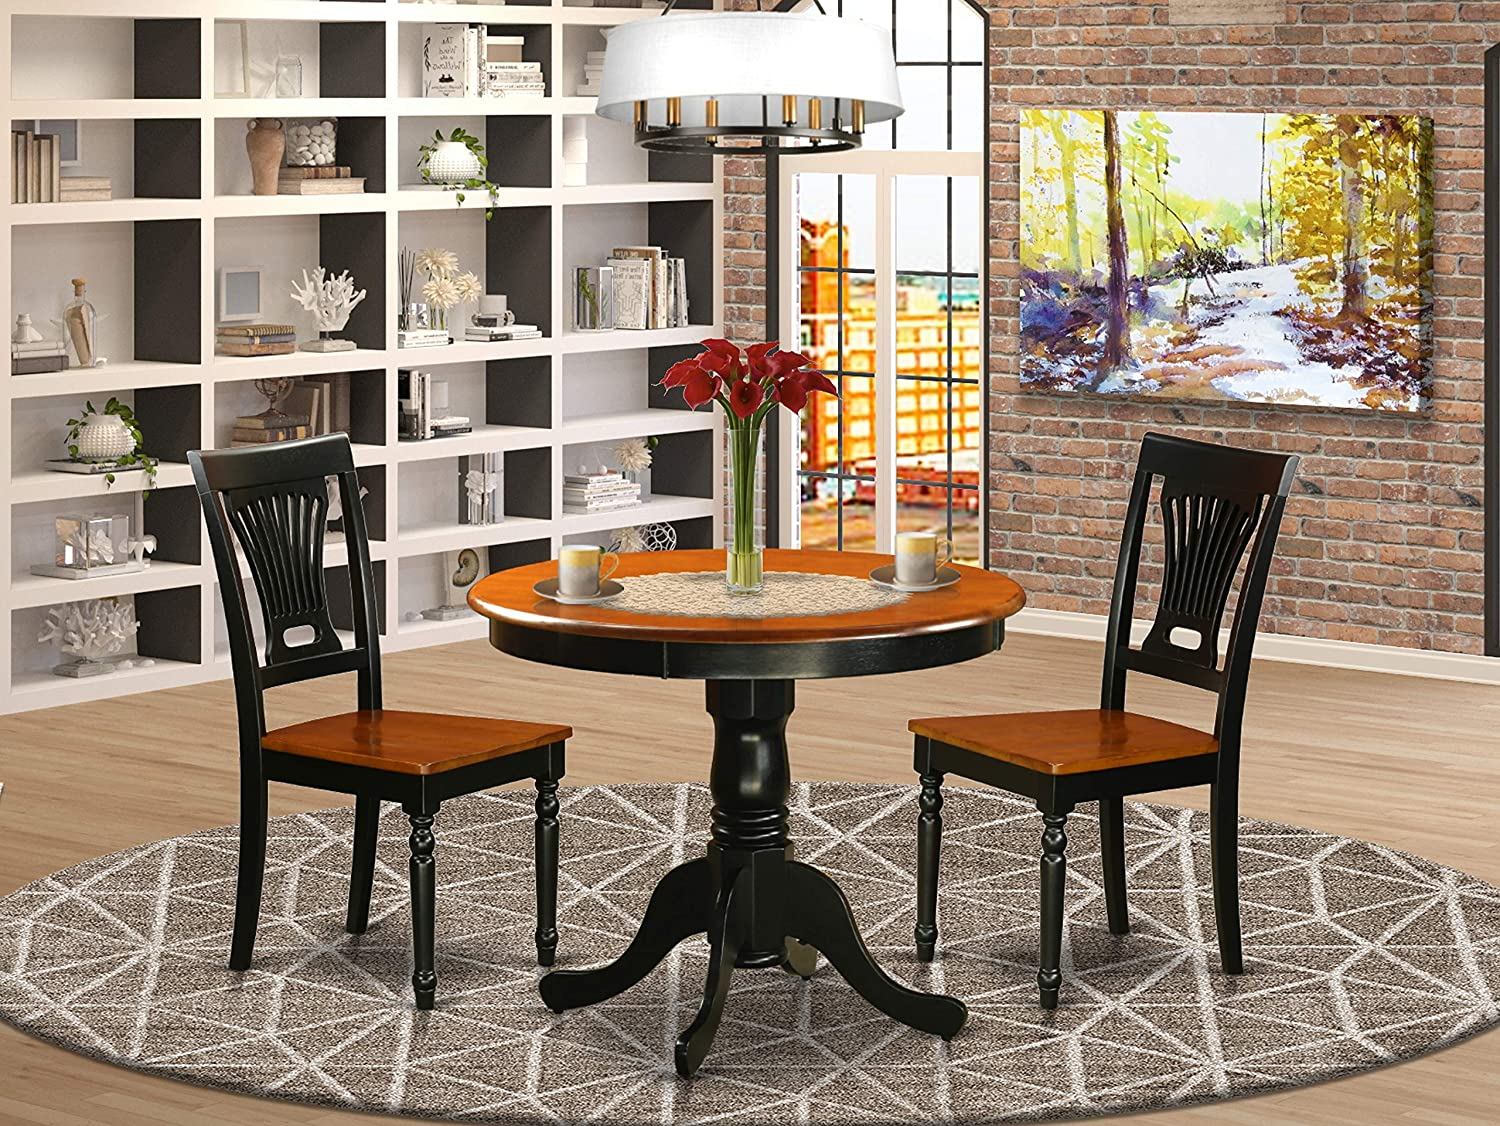 East West Furniture Kitchen Dining Table Set- 2 Amazing Dining Room Chairs - A Gorgeous Dining Room Table- Wooden Seat-Cherry and Black Wood Kitchen Table